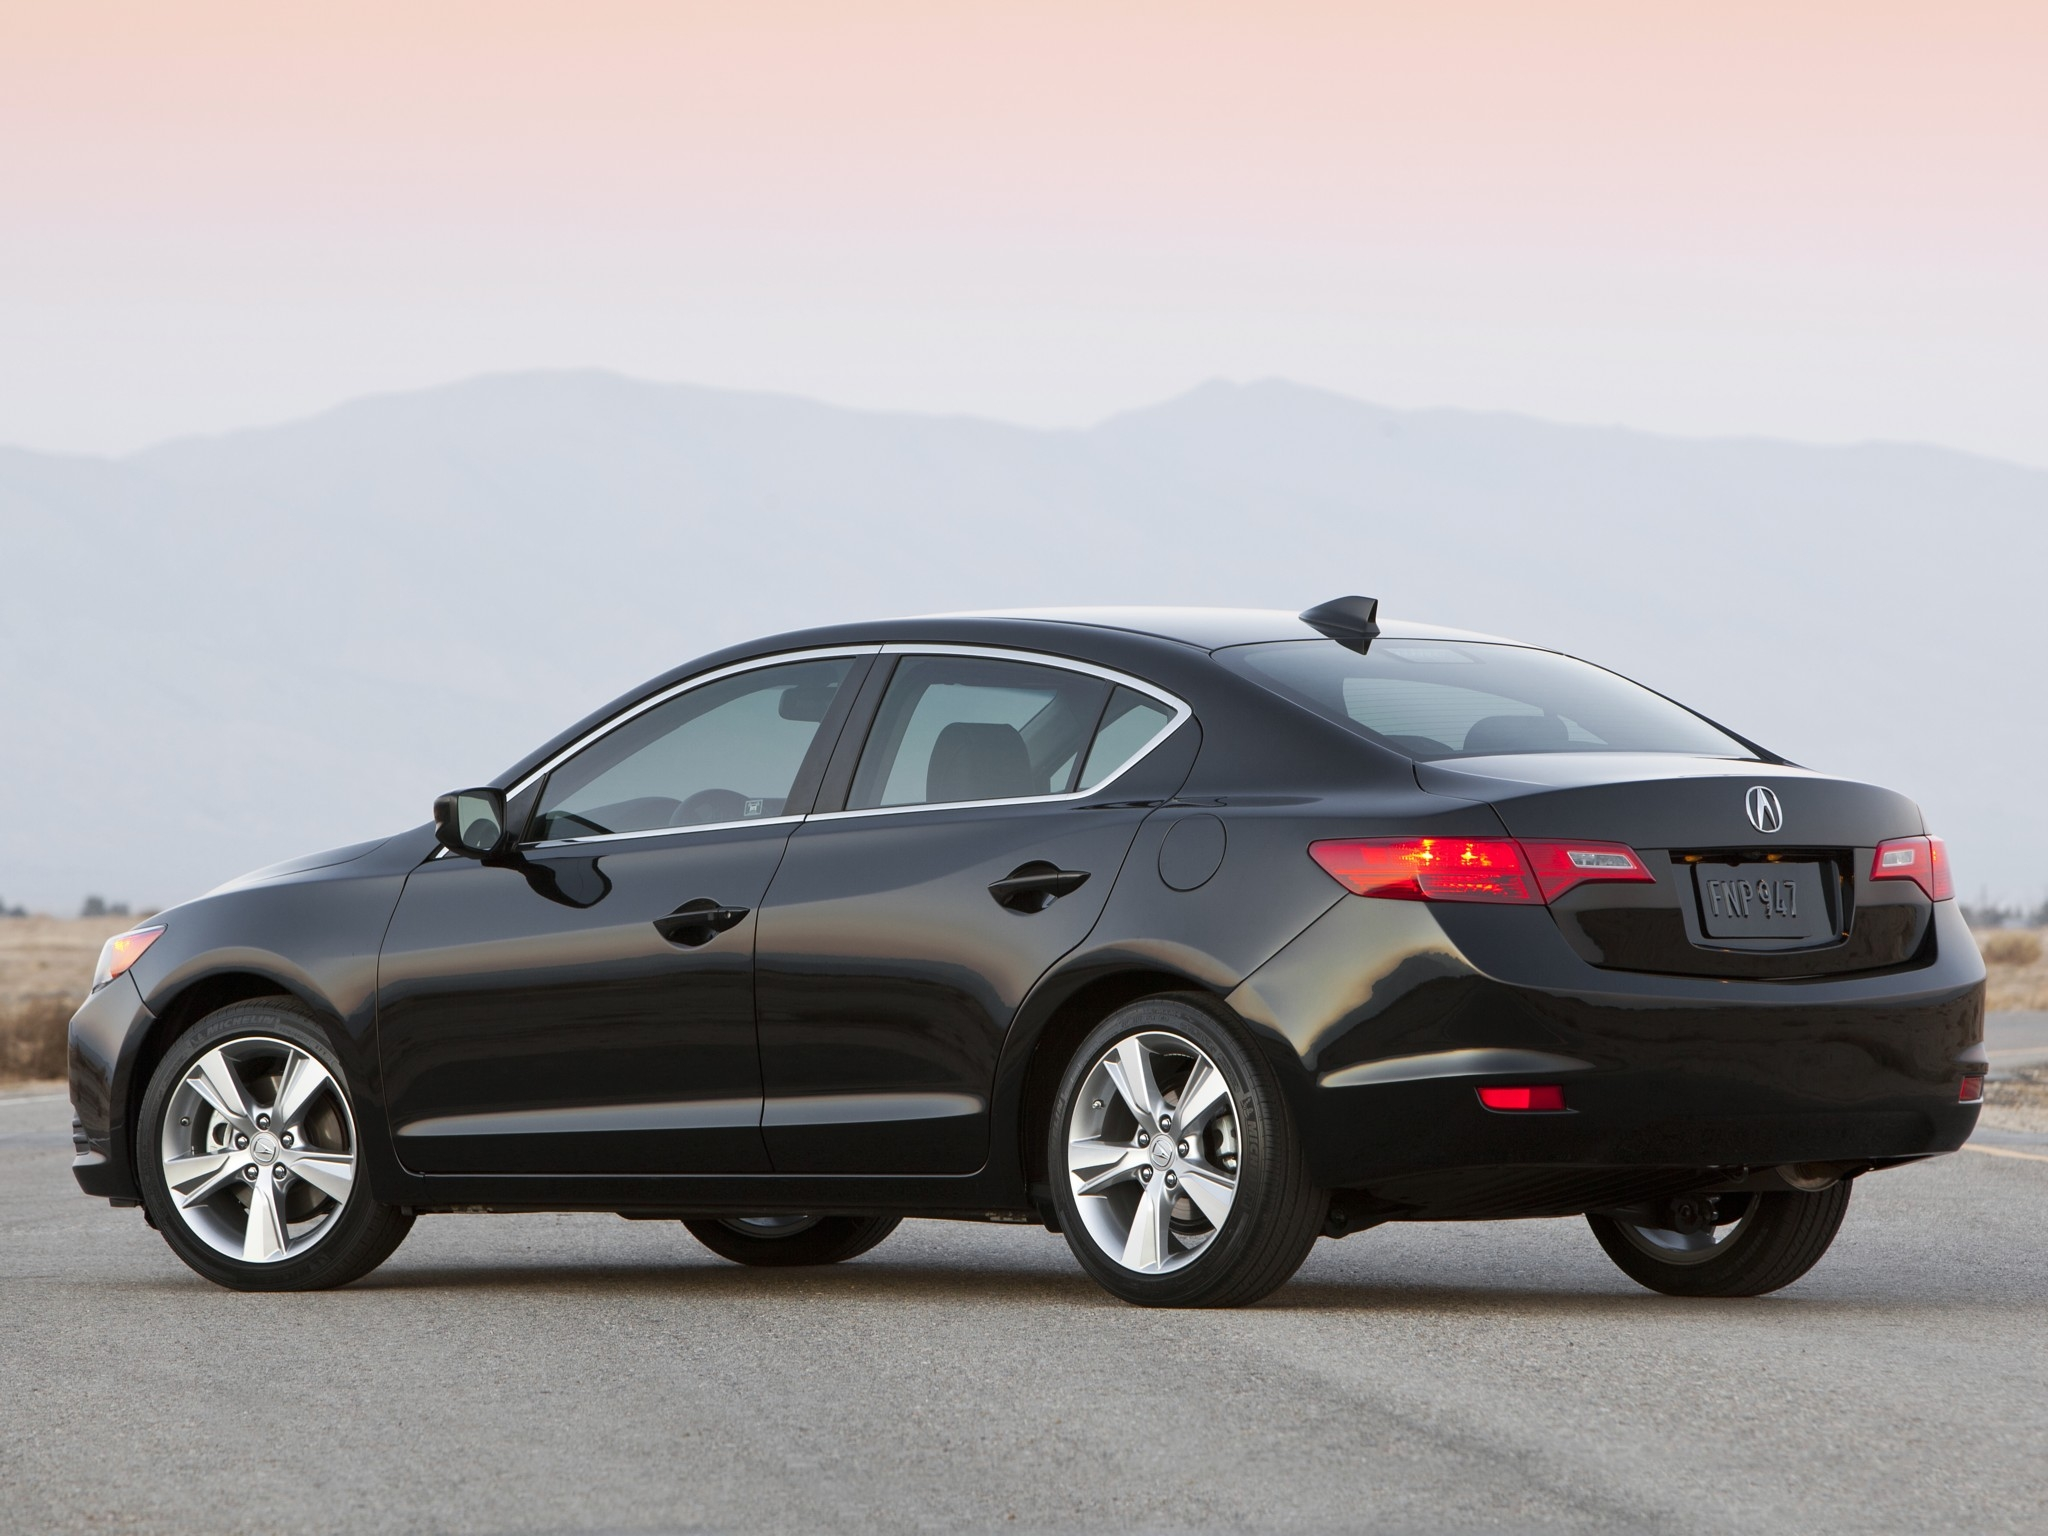 127802 download wallpaper Cars, Acura, Ilx, 2012, Sedan, Style, Side View, Auto, Mountains screensavers and pictures for free